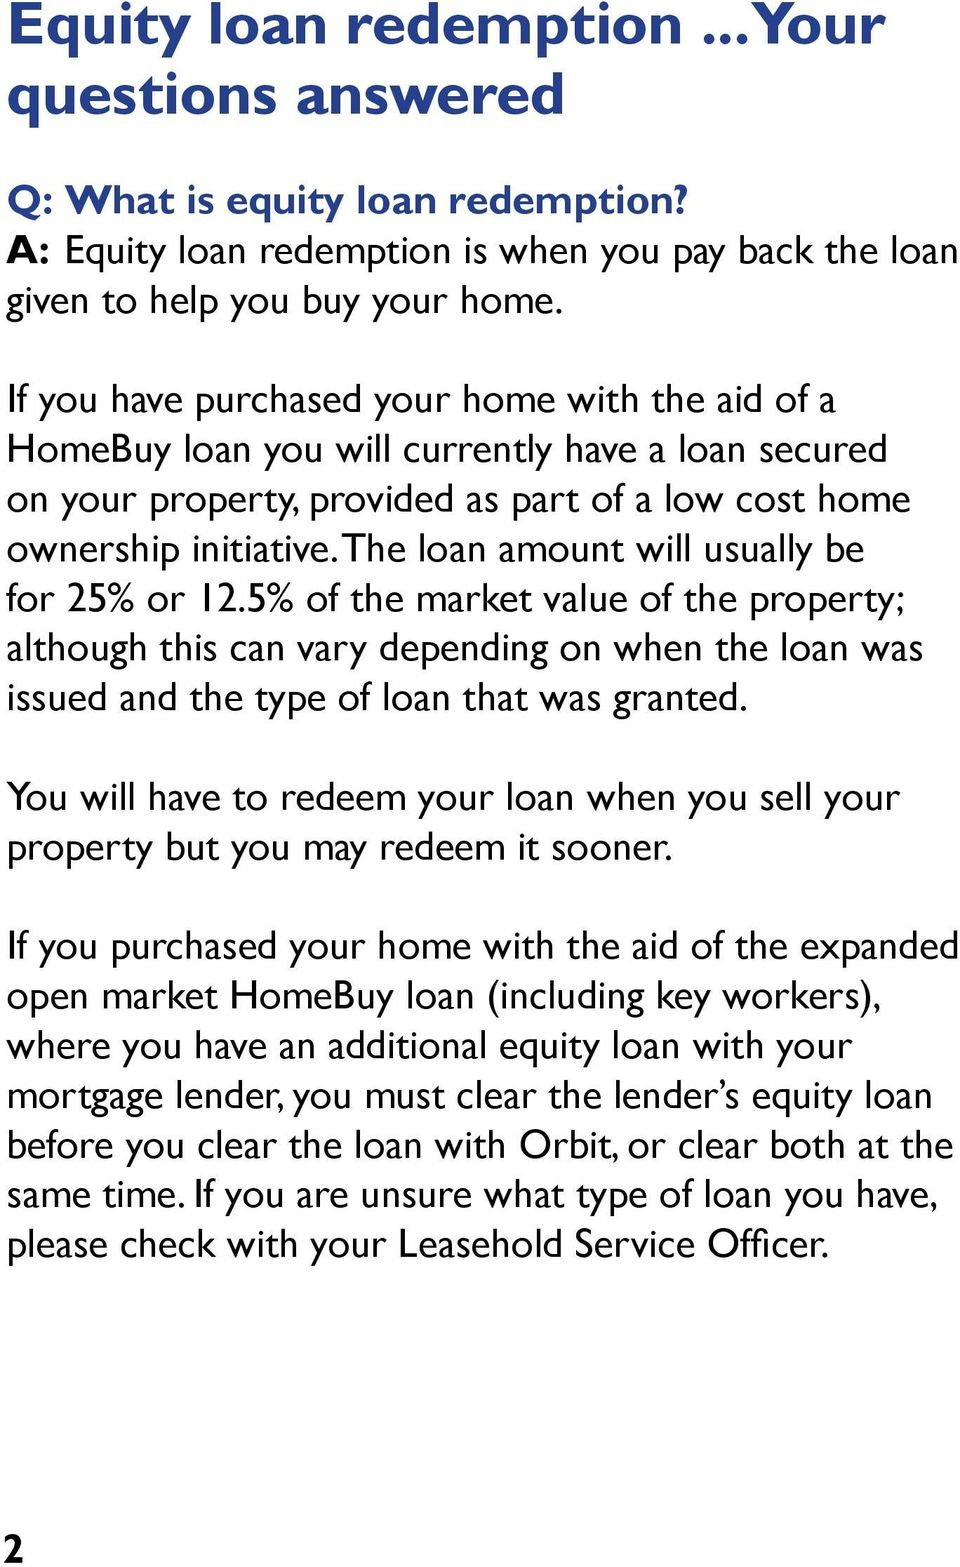 The loan amount will usually be for 25% or 12.5% of the market value of the property; although this can vary depending on when the loan was issued and the type of loan that was granted.